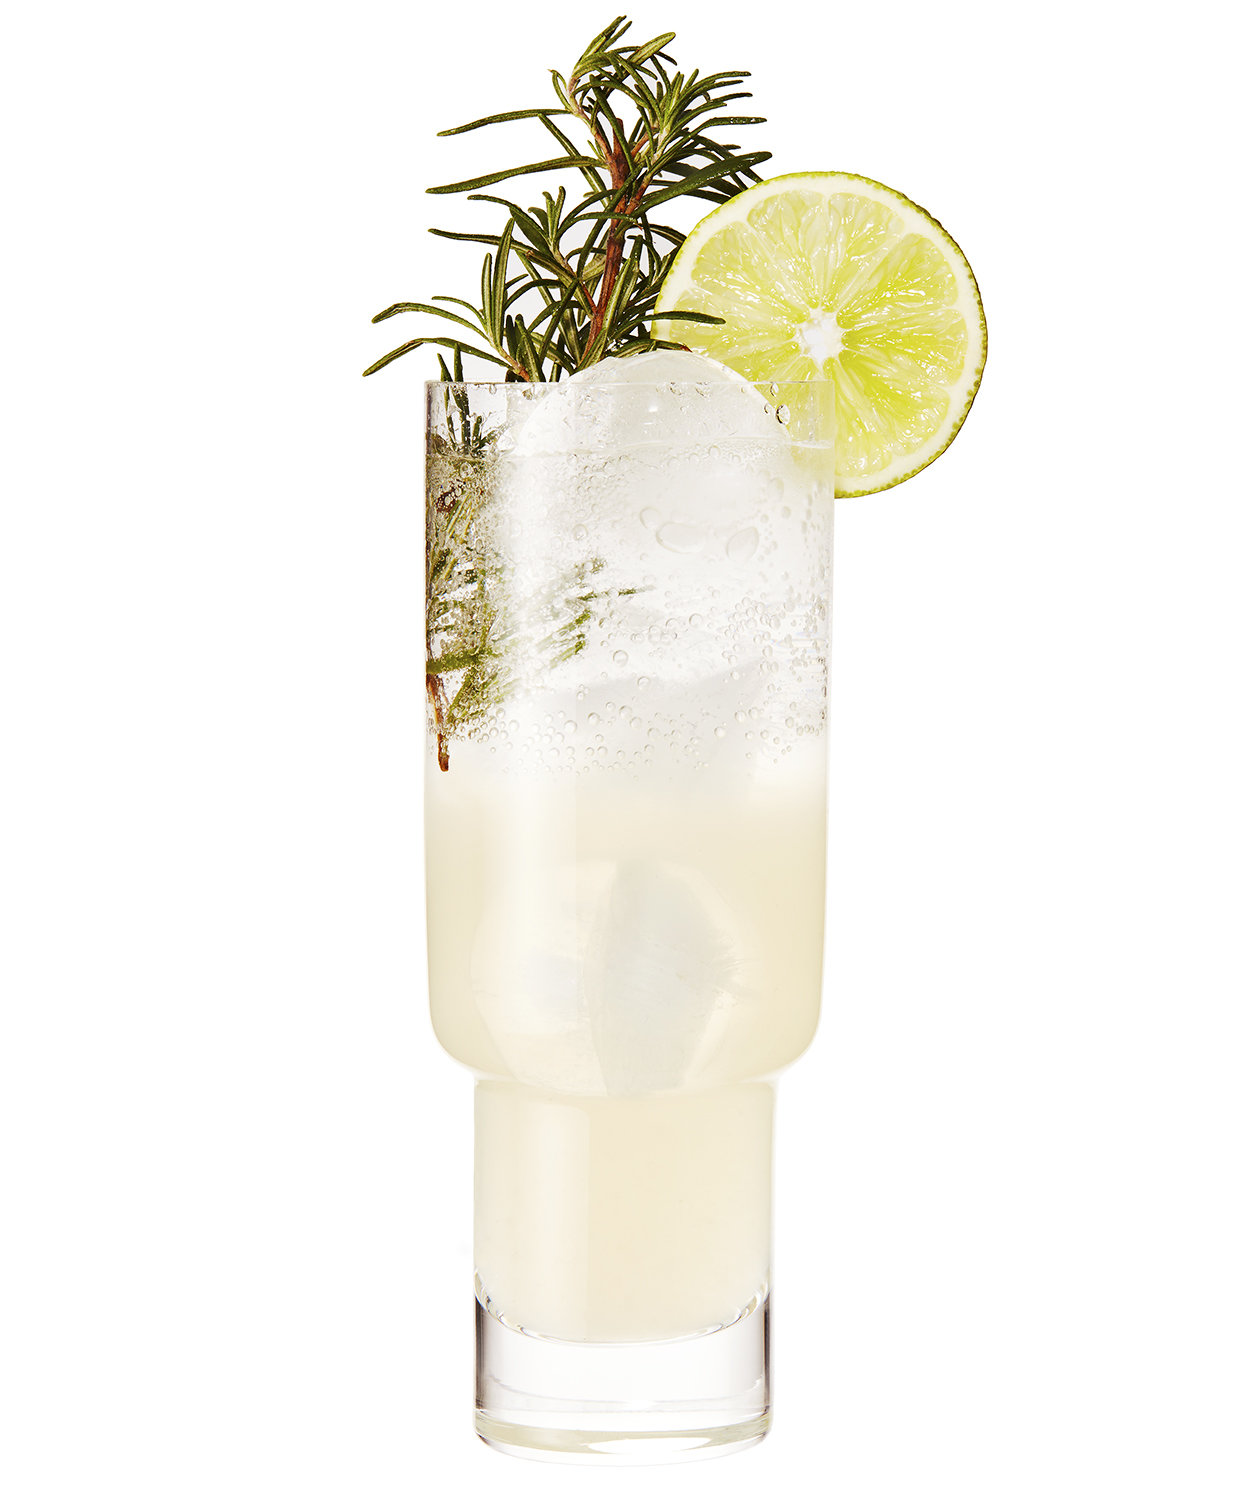 rosemary-fizz-mocktail